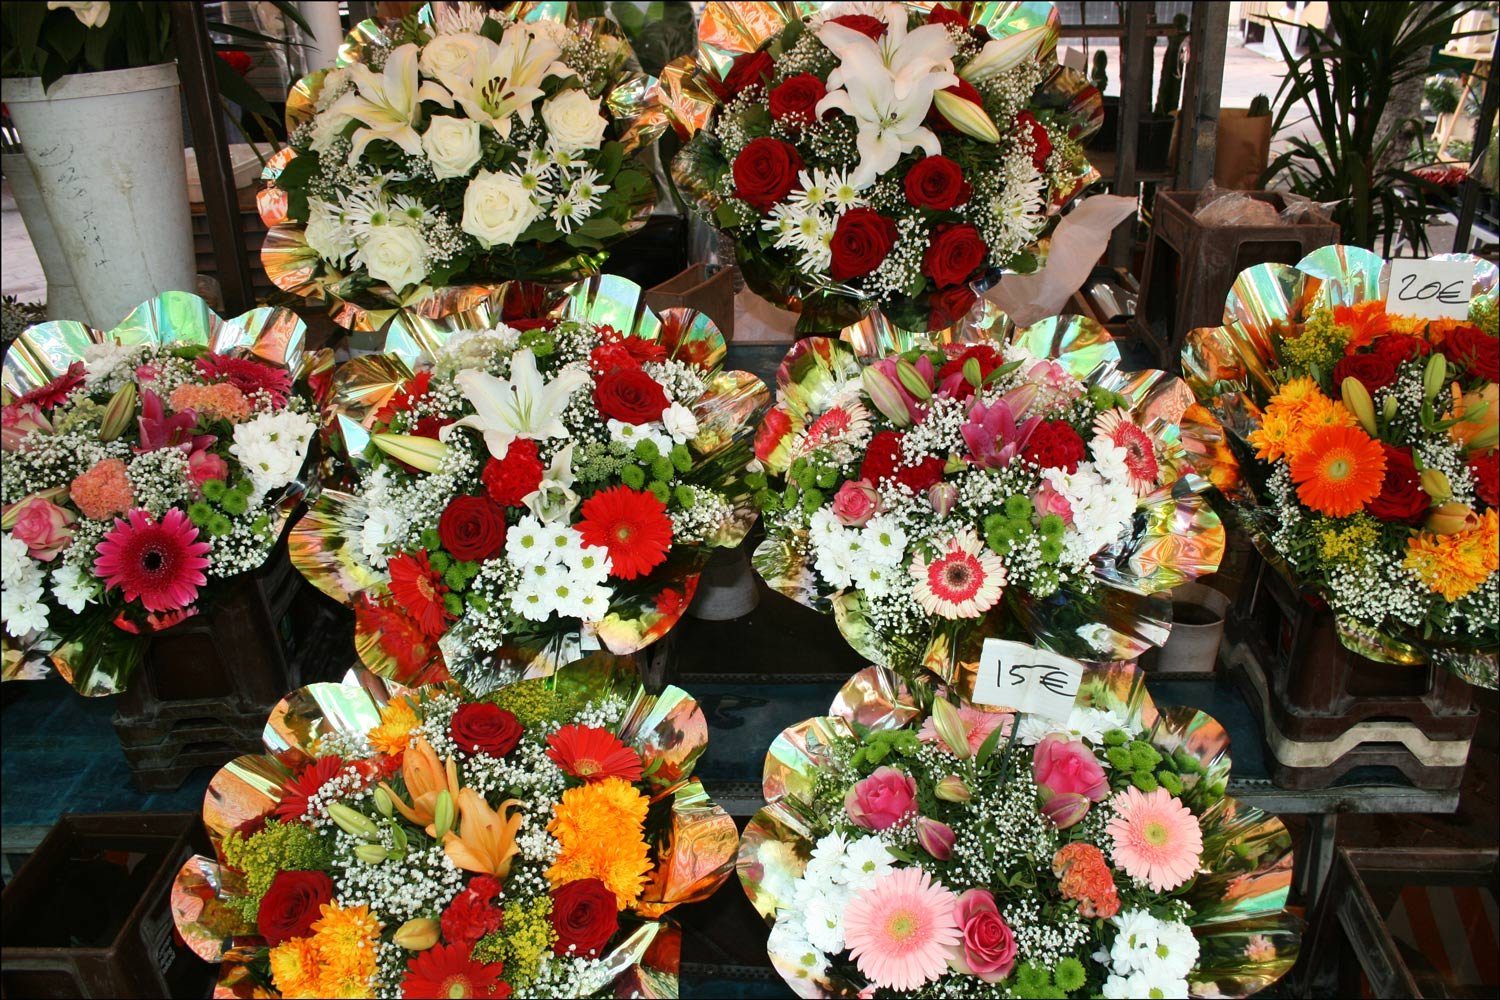 Flowers in the Outdoor Market in Nice